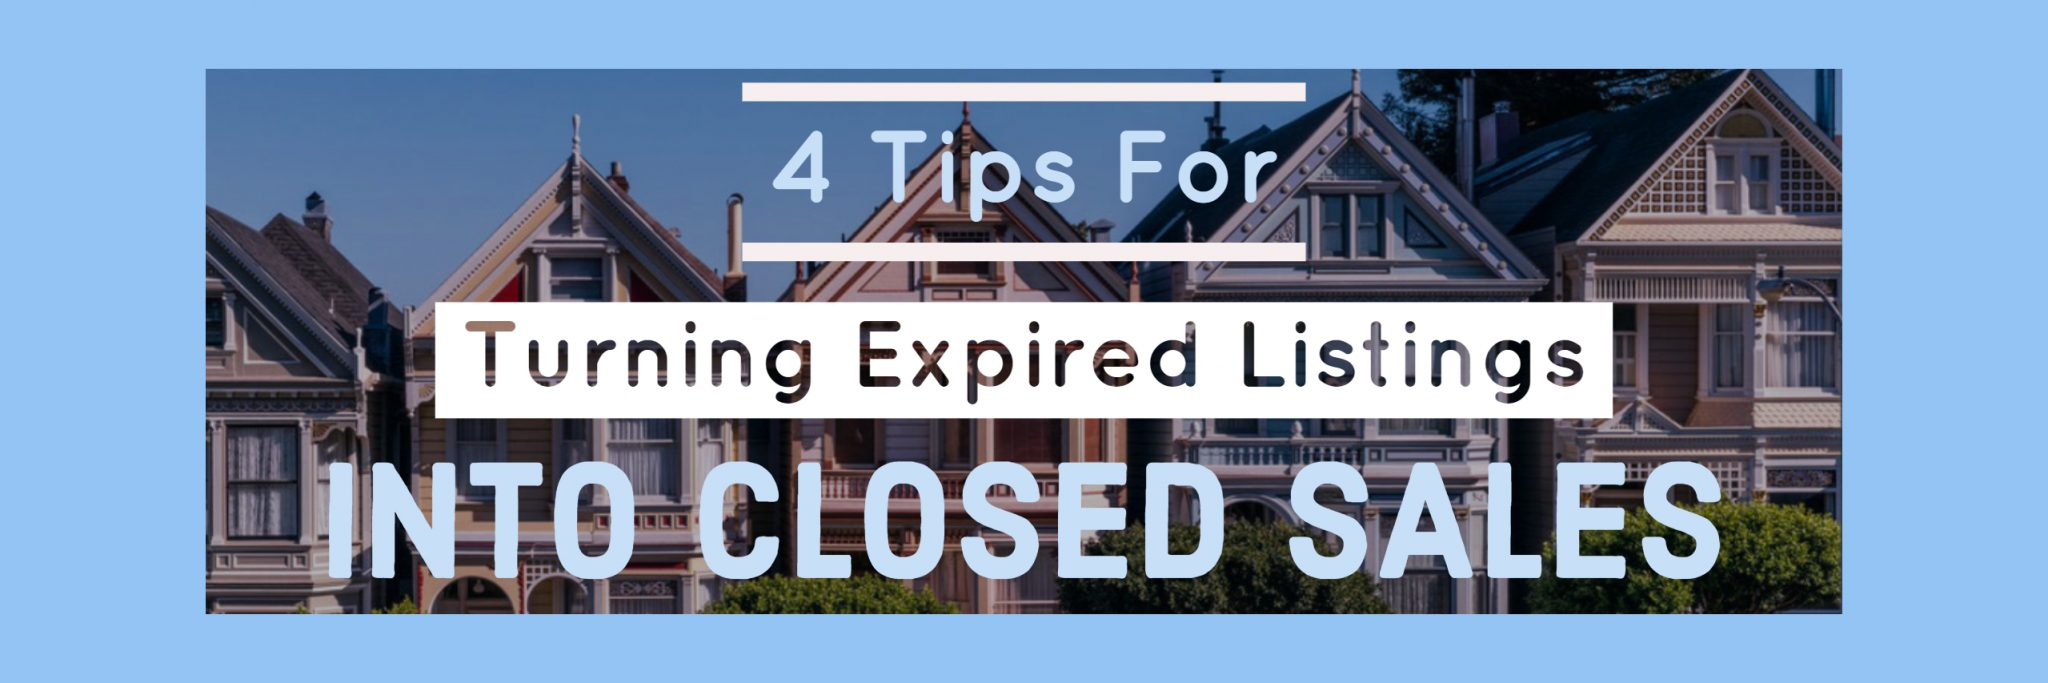 4 Tips for Turning Expired Listings into Closed Sales